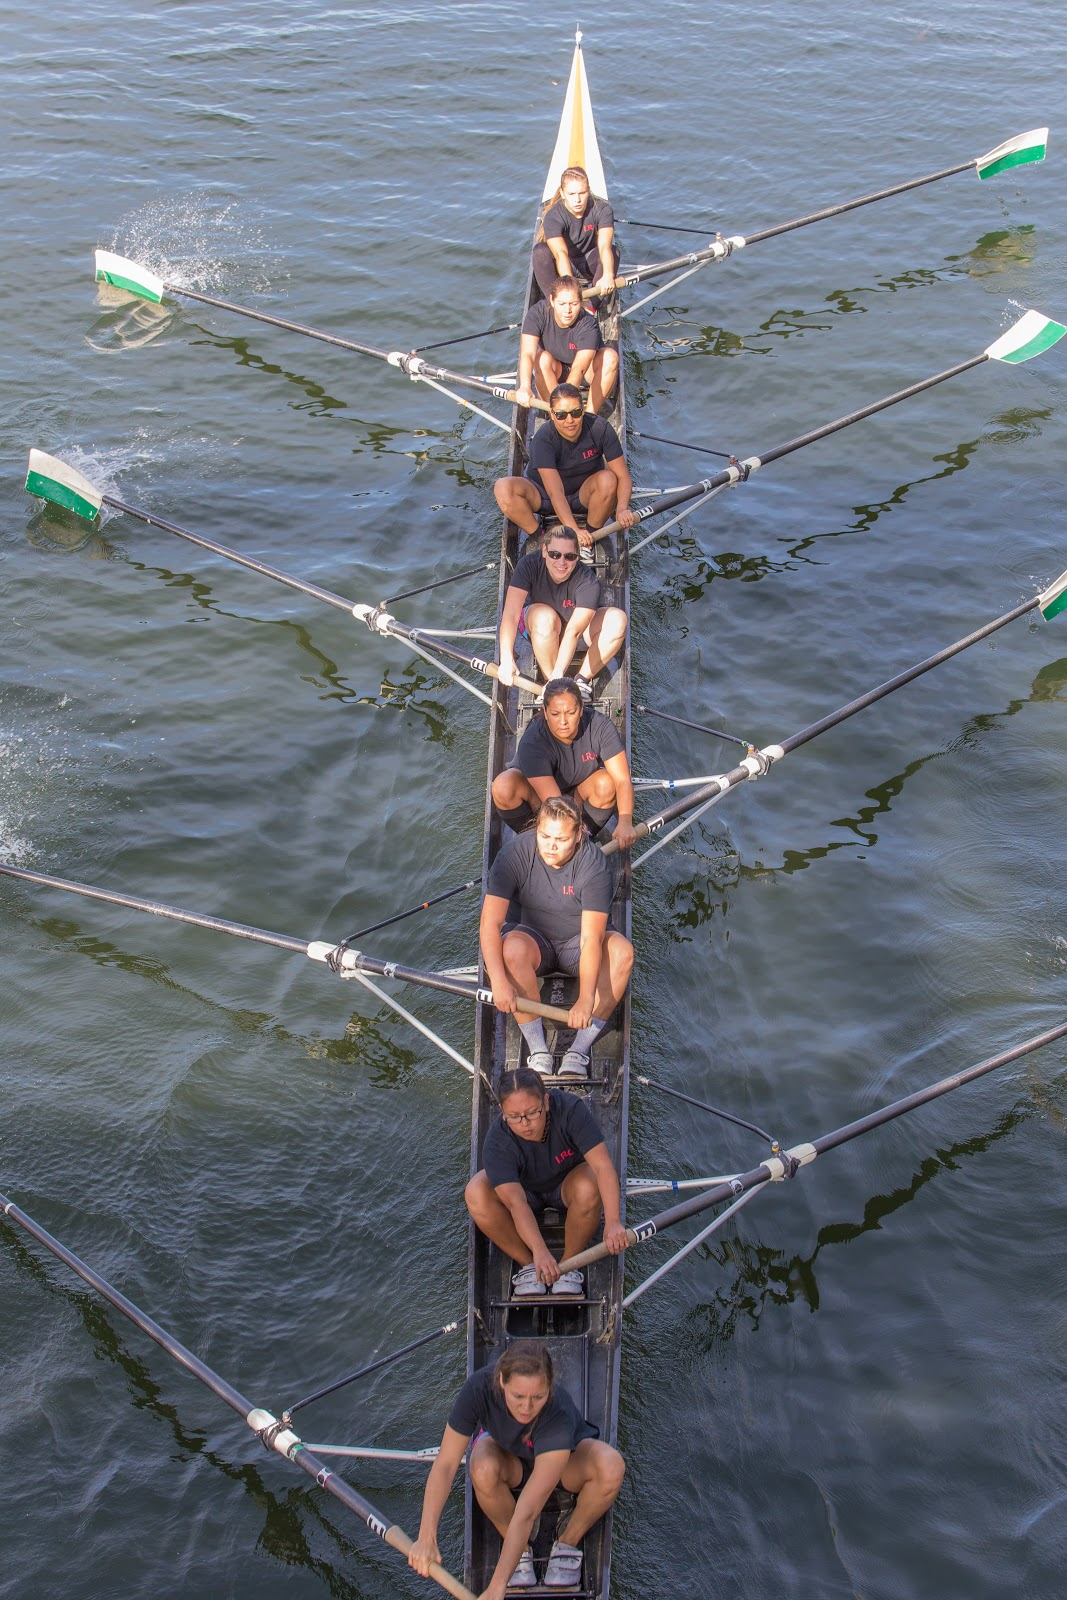 The team as seen from a bridge as they compete in a sport not known for it's diversity. Photo: Alex Hamer